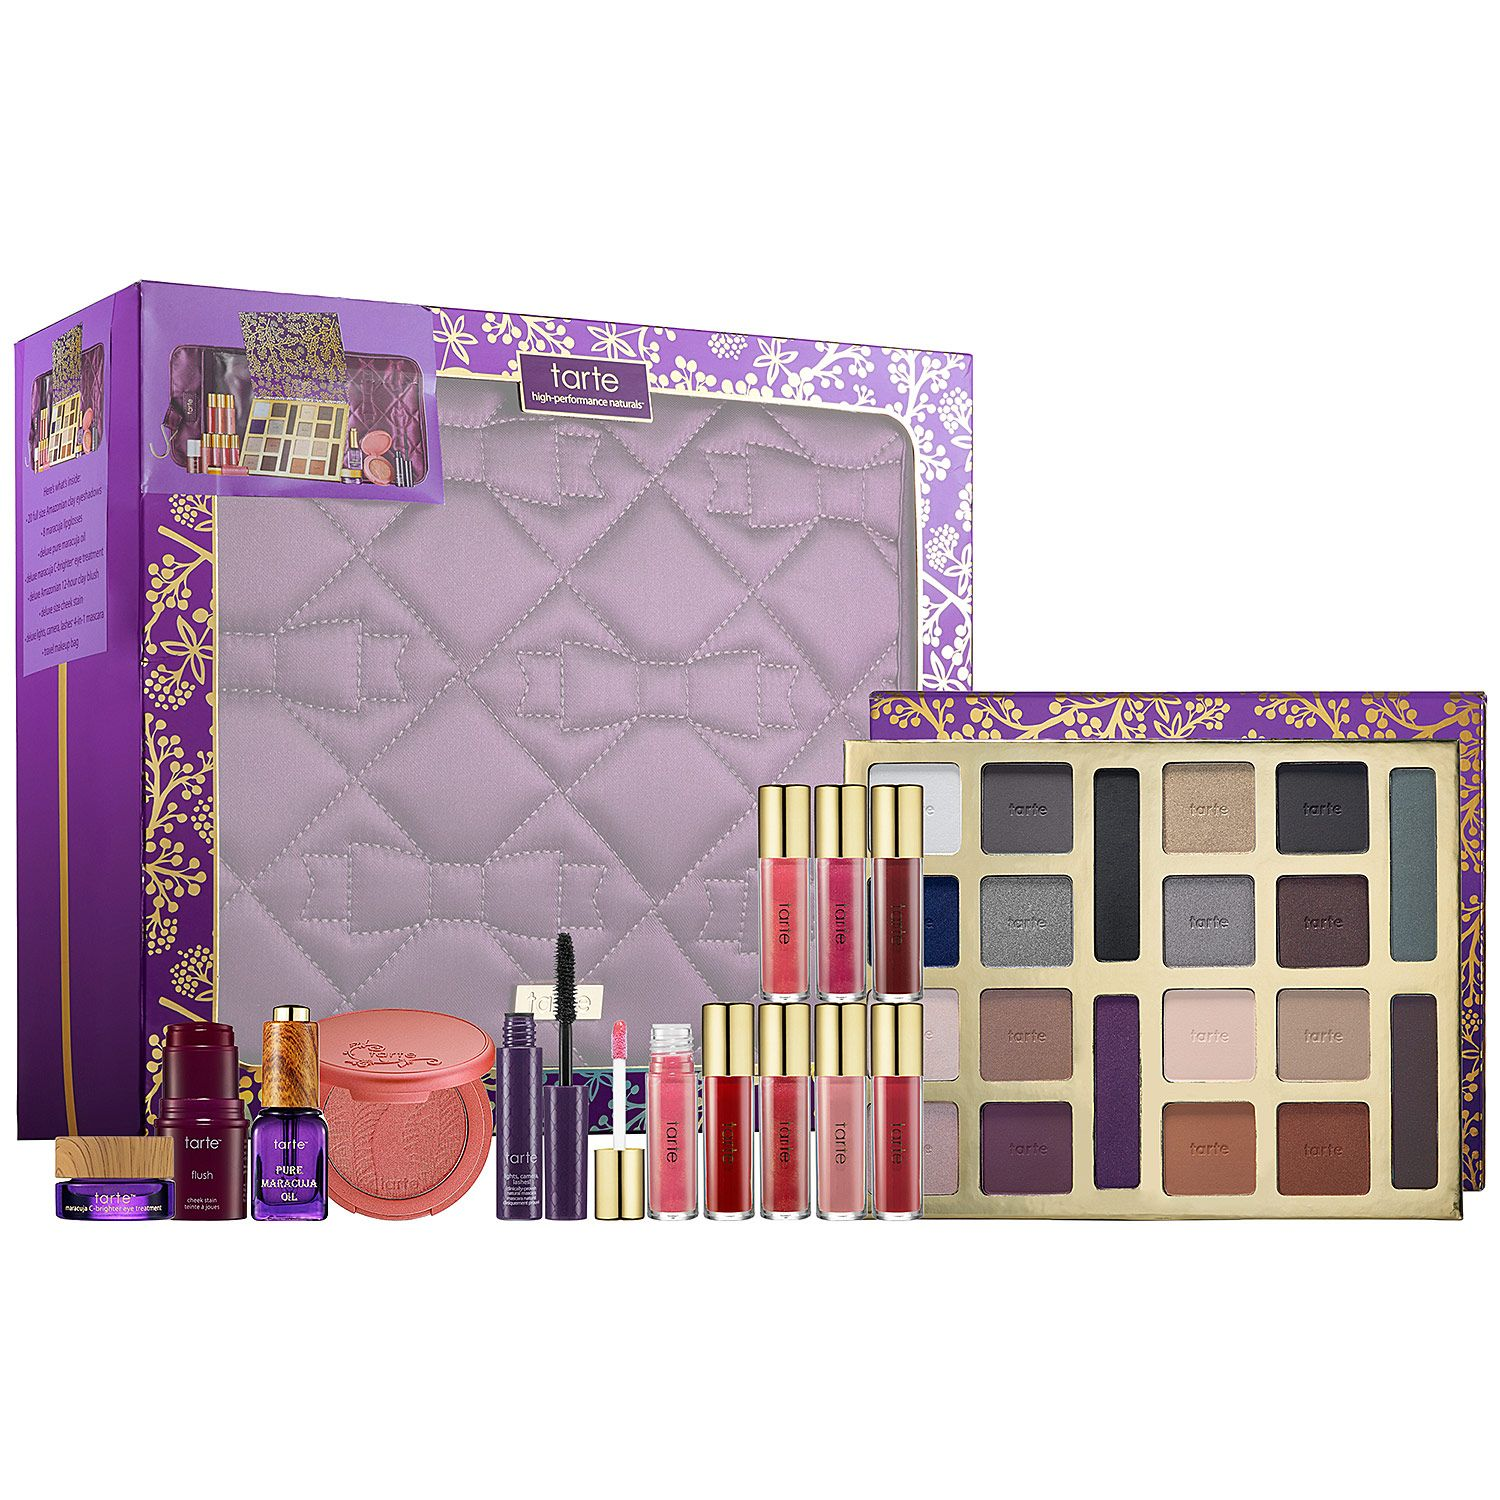 New at Sephora Tarte The Tarte of Giving Collector's Set